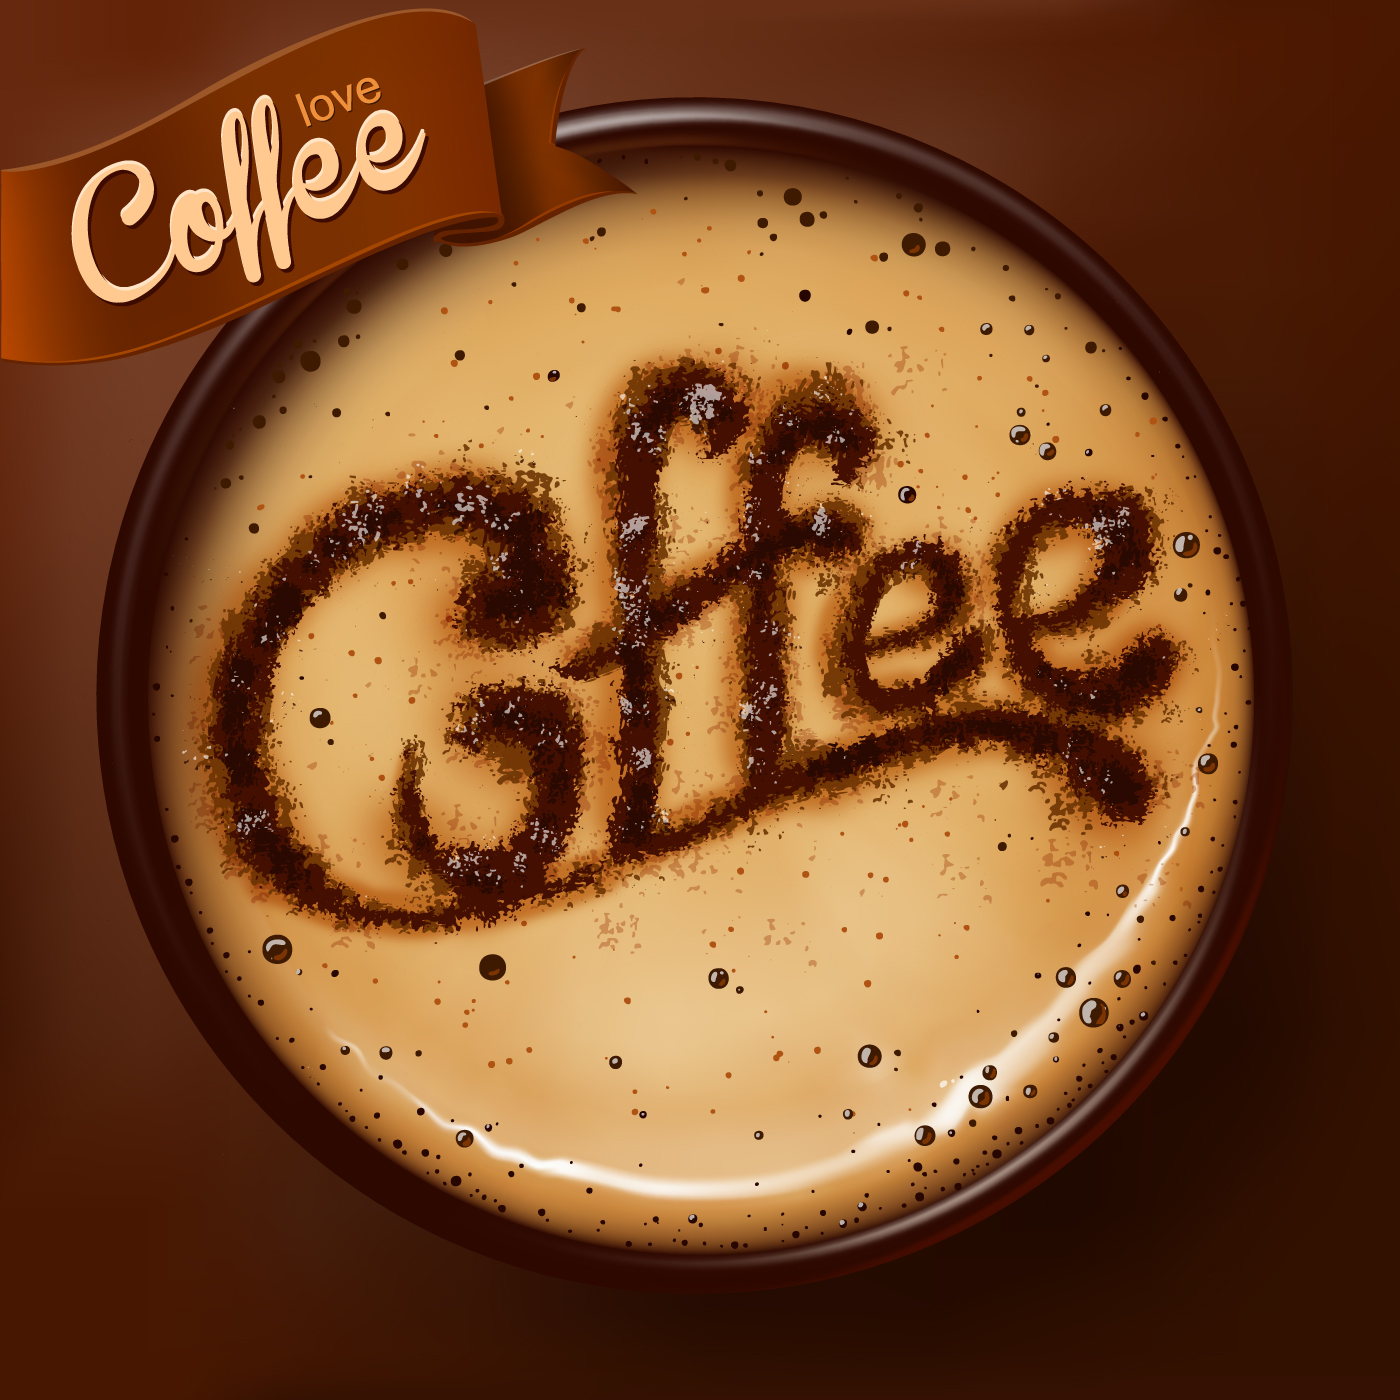 3d Emoticons Wallpapers Romantic Coffee Labels Design Vector 03 Free Download